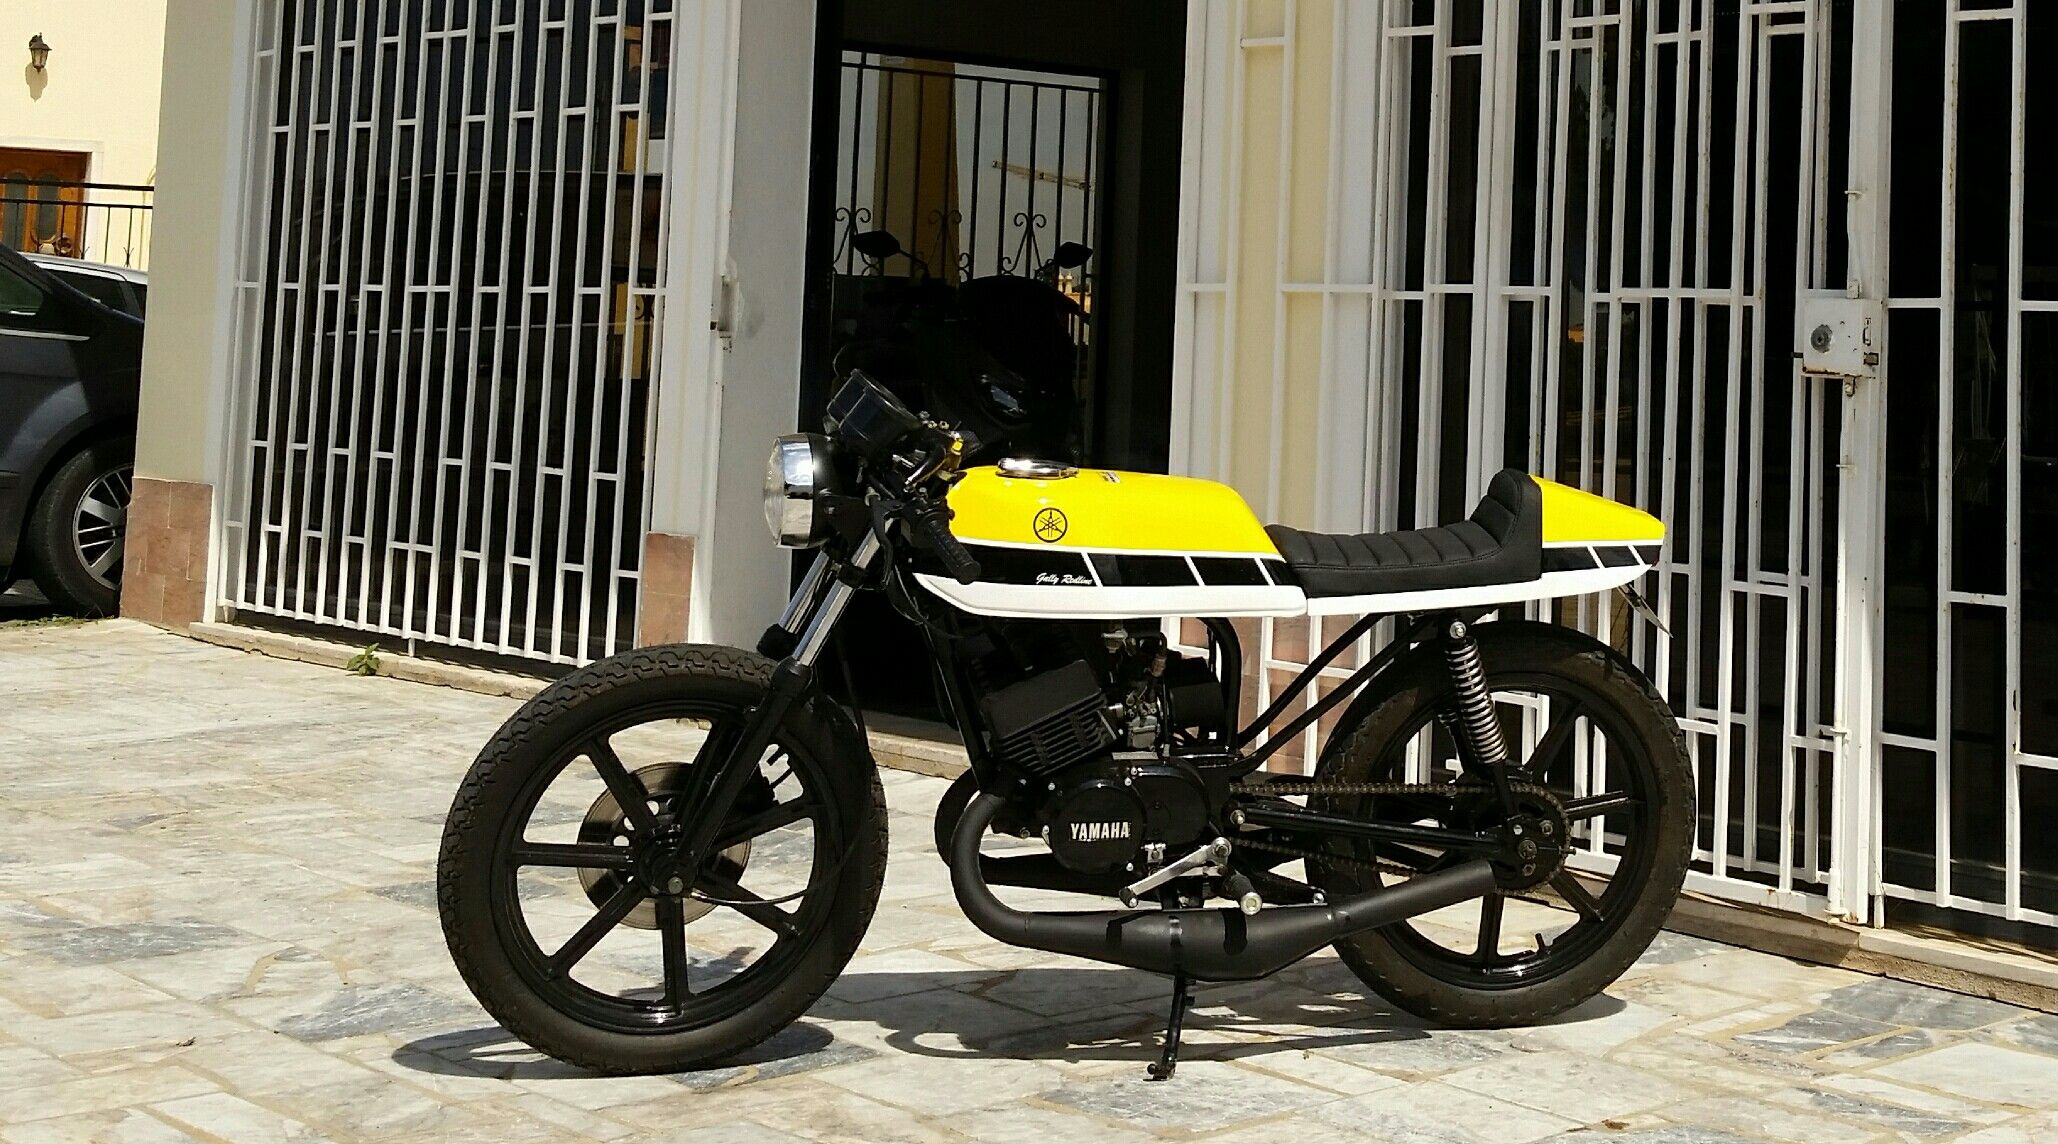 Yamaha Rd 125 Dx 60th Anniversary Cafe Racer Rx 135 Motorbikes